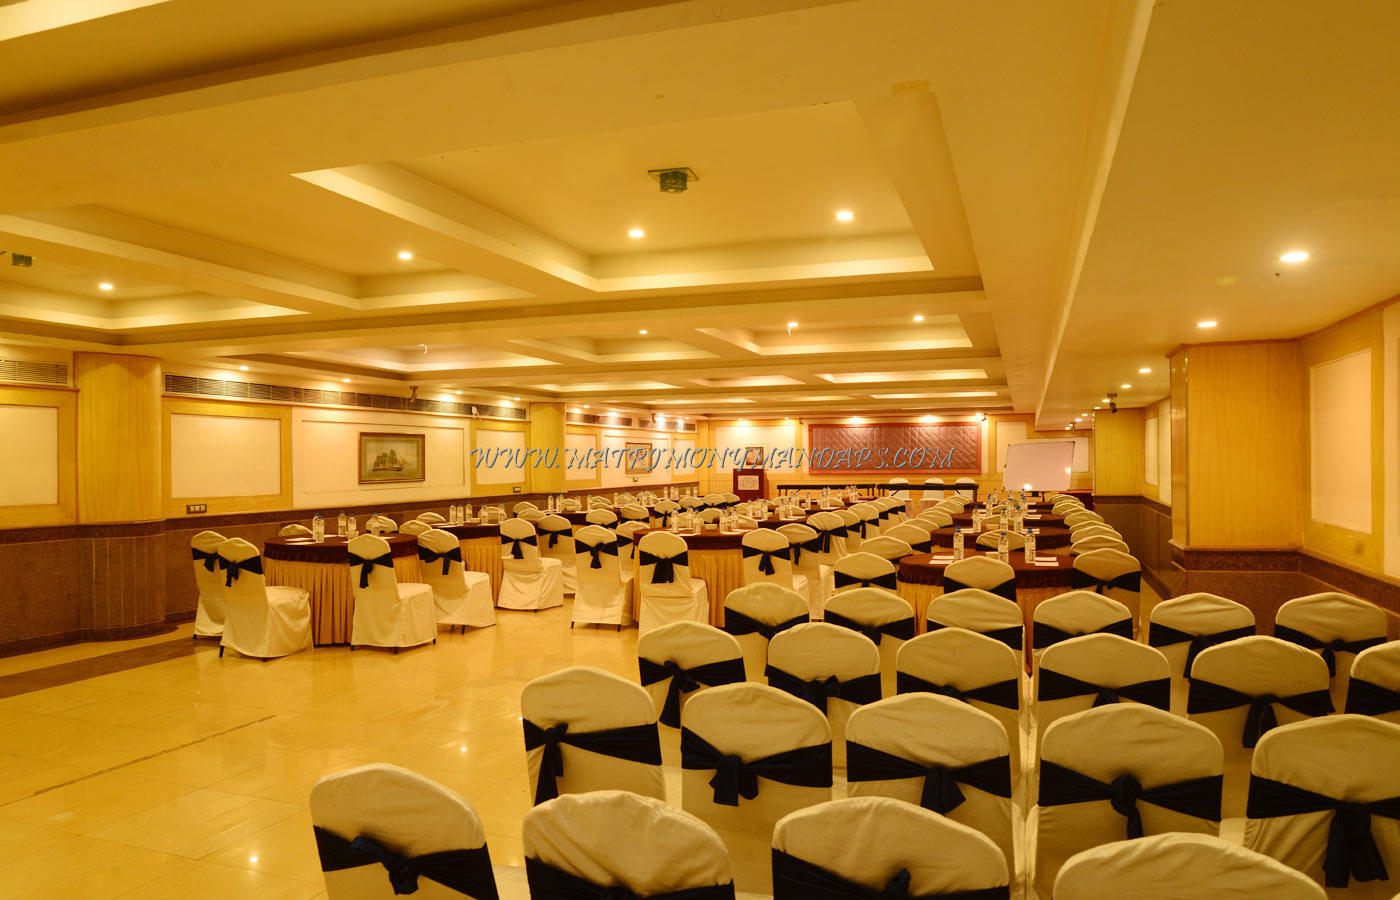 Find the availability of the Maharaja Hall At Citadel Hotel (A/C) in Majestic, Bangalore and avail special offers